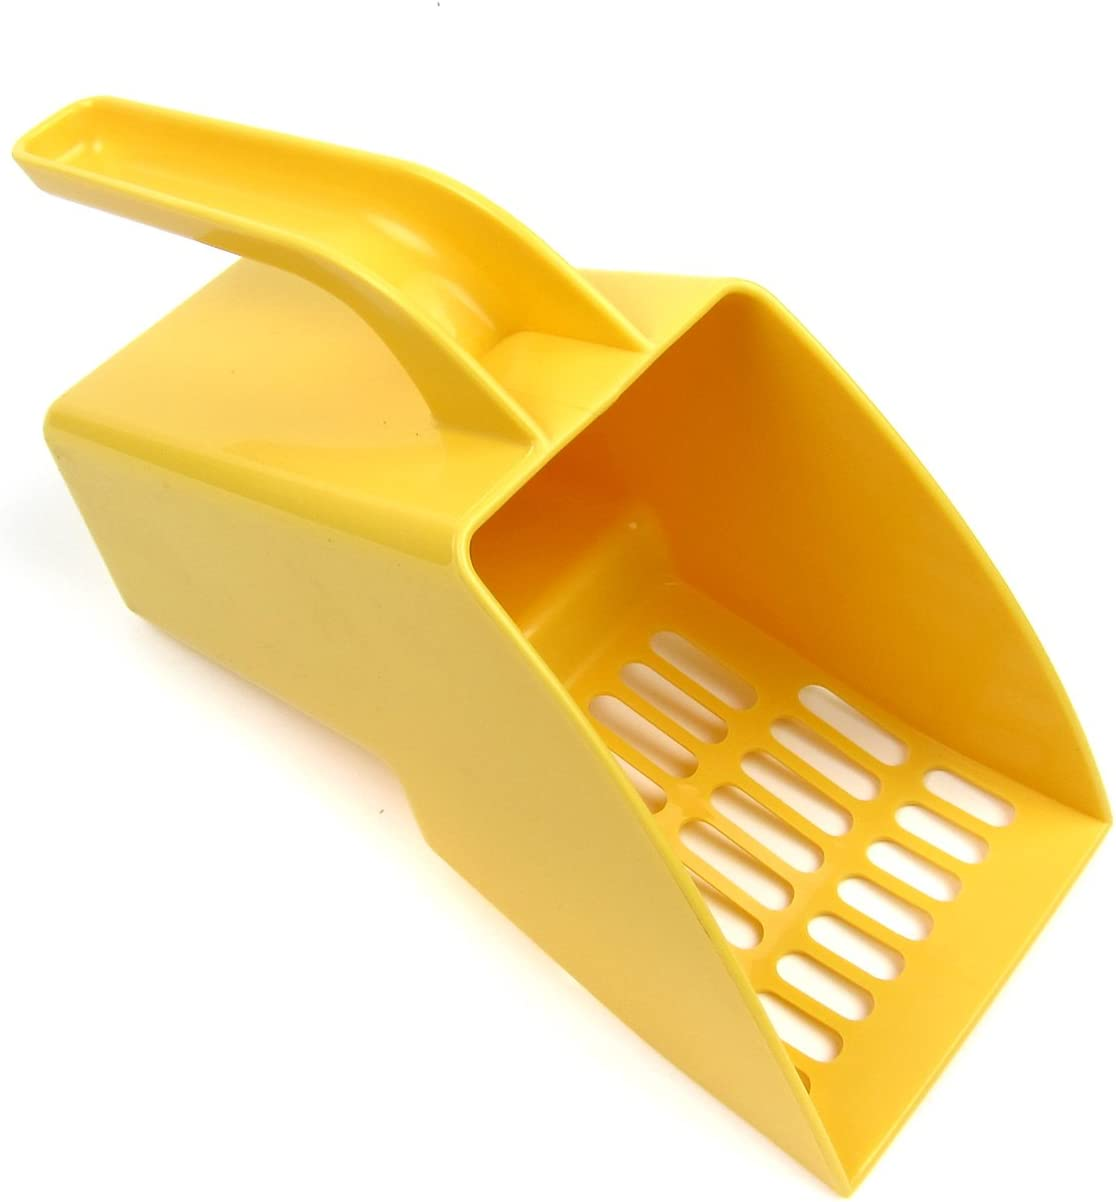 Alfie Pet - Wendel Litter 2-Piece Omaha Cheap mail order specialty store Mall Yellow Scoop Set Color: